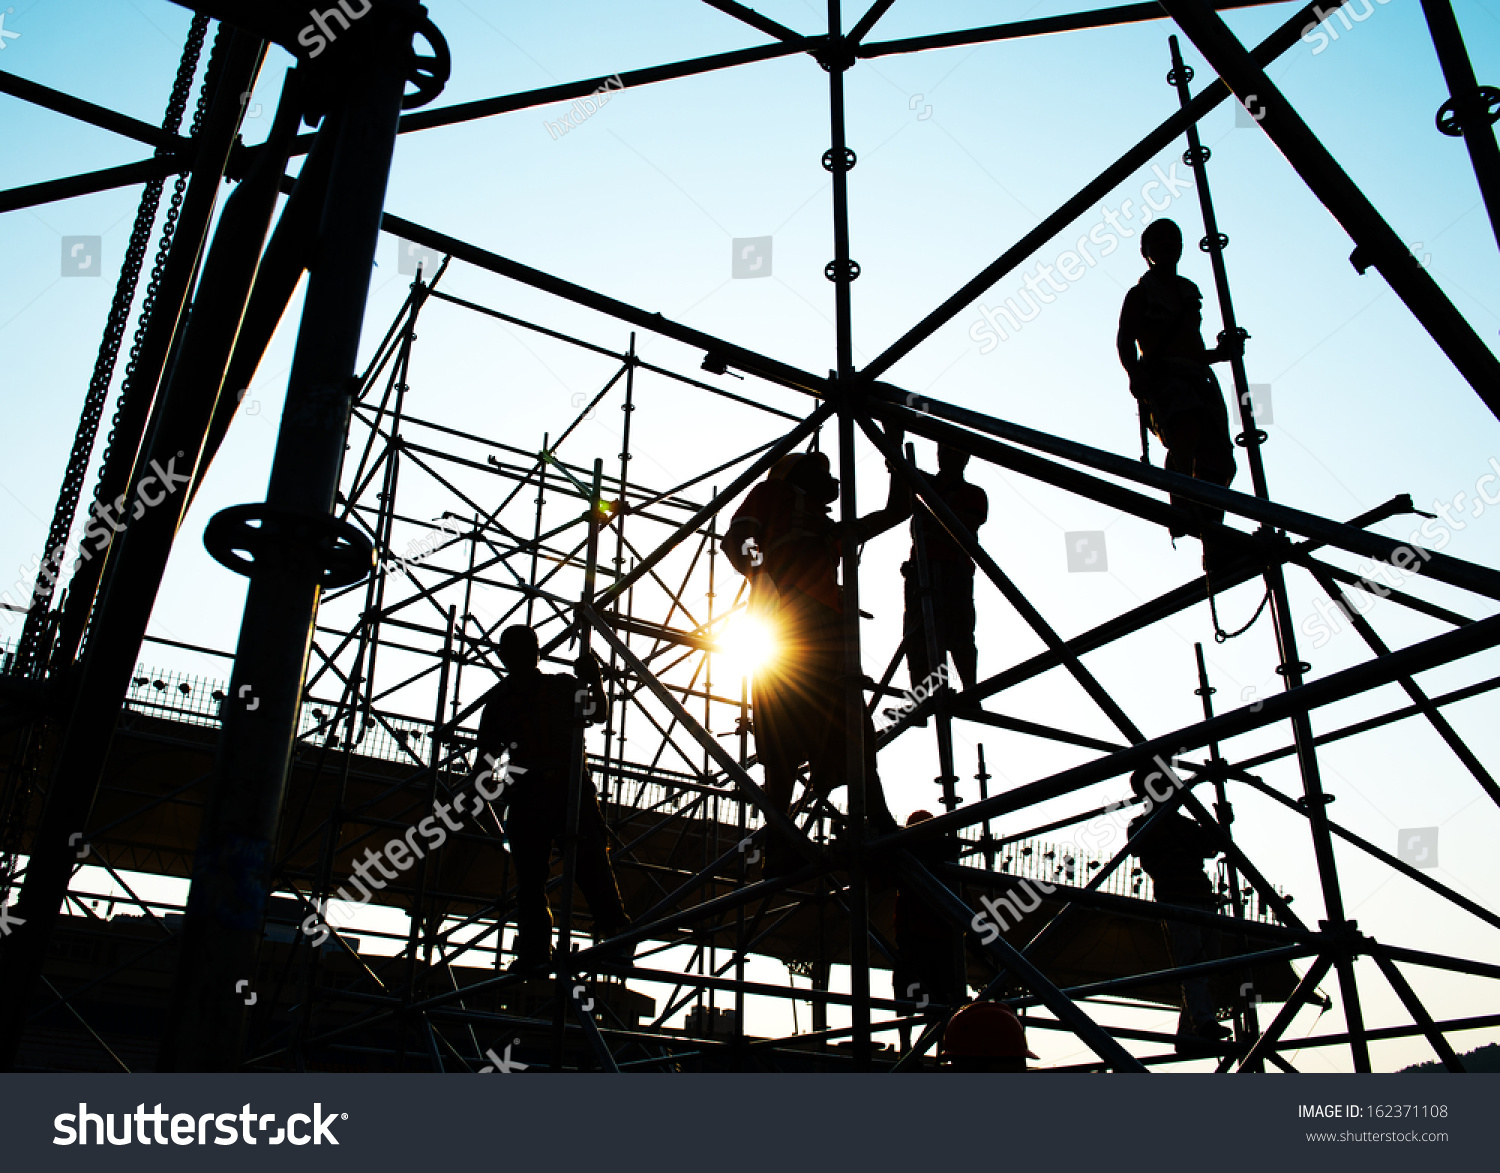 Working On Scaffolding : Construction workers working on scaffolding stock photo